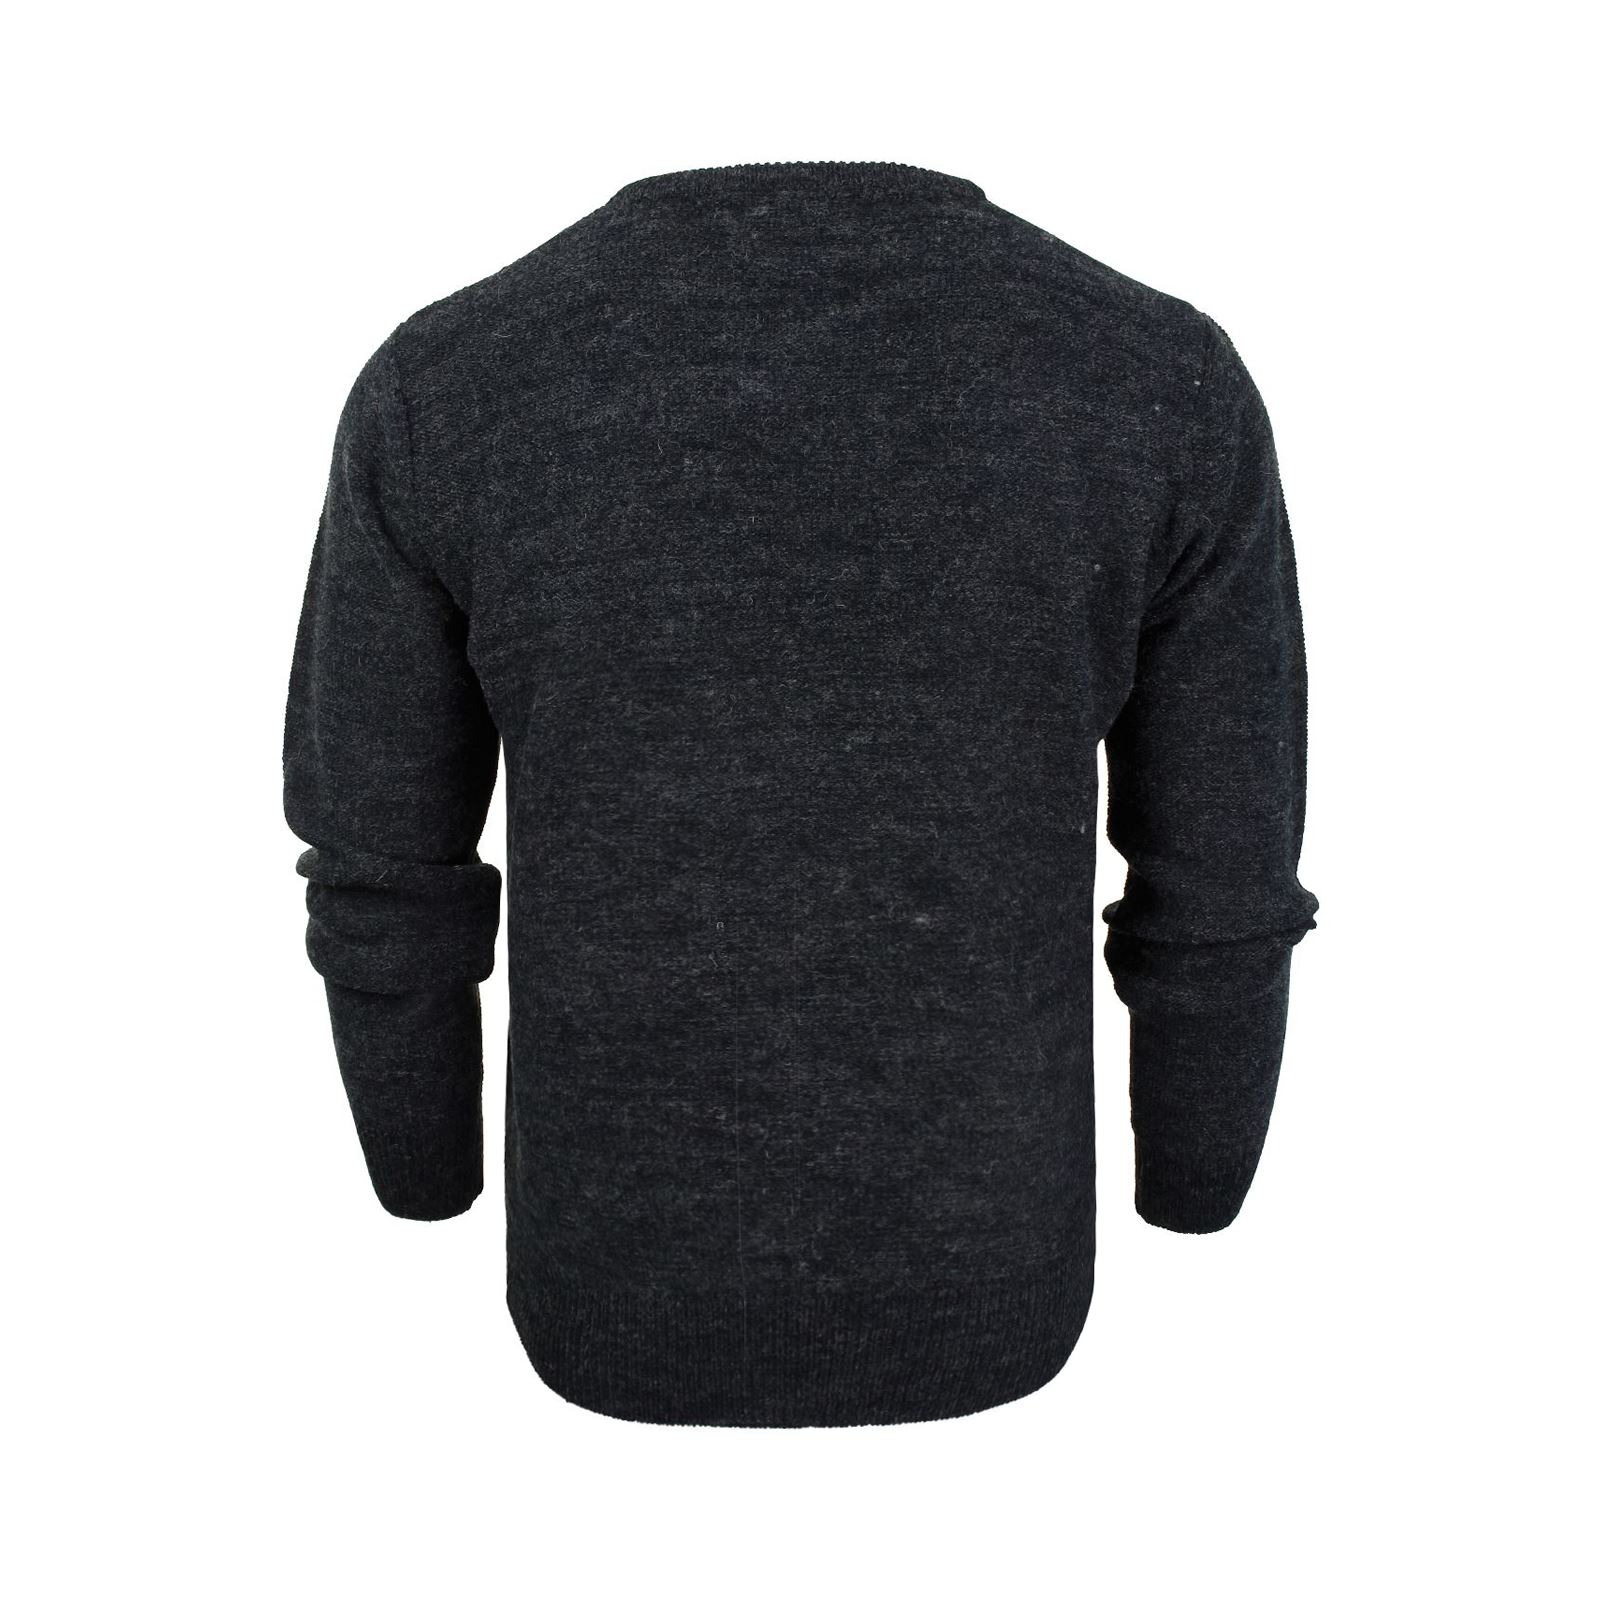 Mens-Jumper-Brave-Soul-Bayard-Wool-Mix-Crew-Neck-Knitted-Sweater thumbnail 7